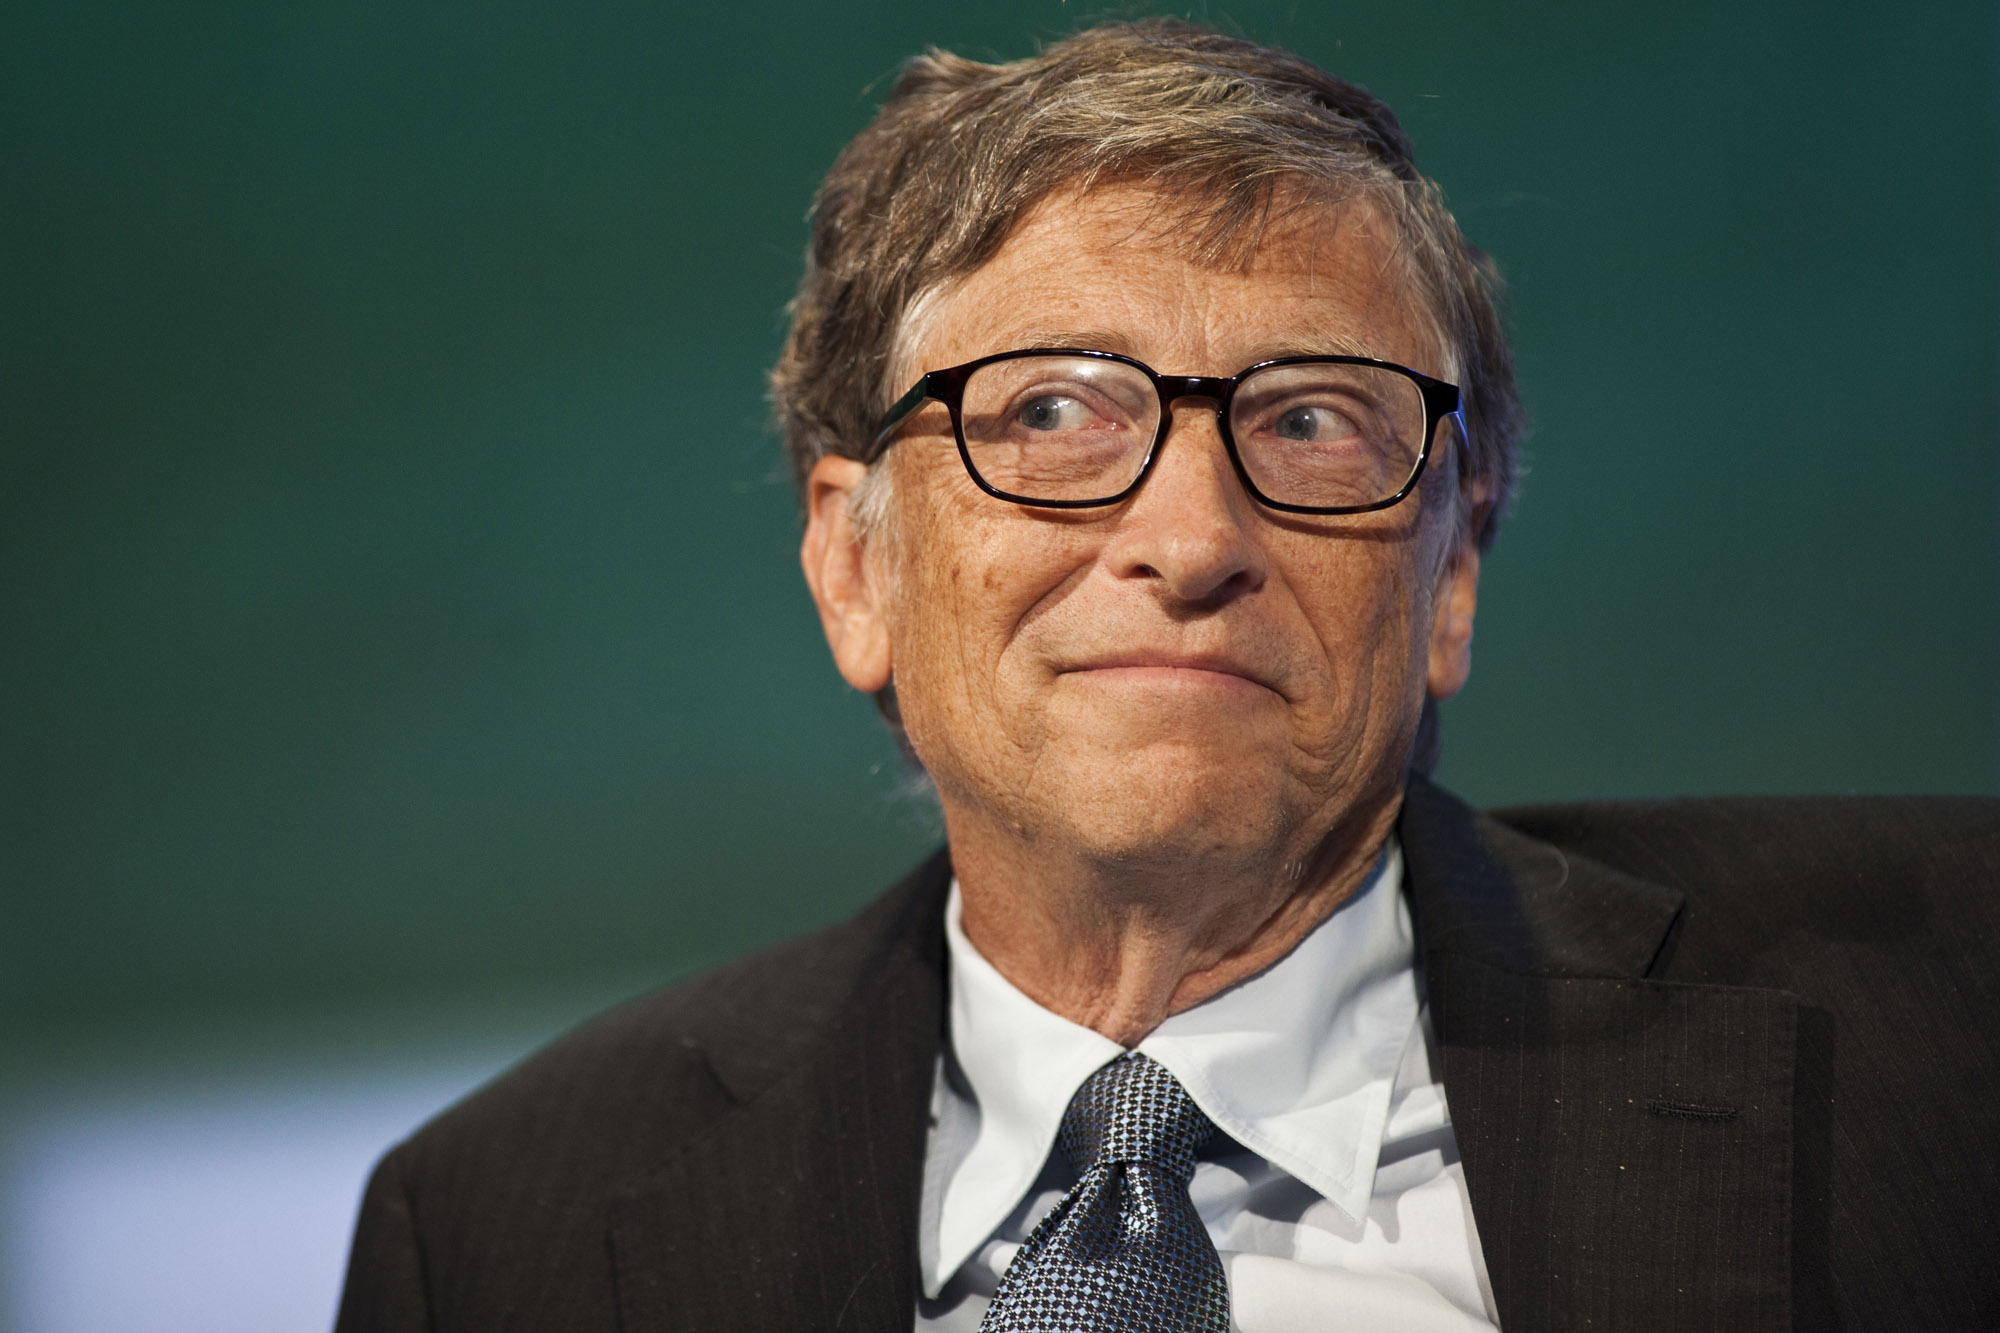 Bill Gates is the top Richest Global tech Billionaire